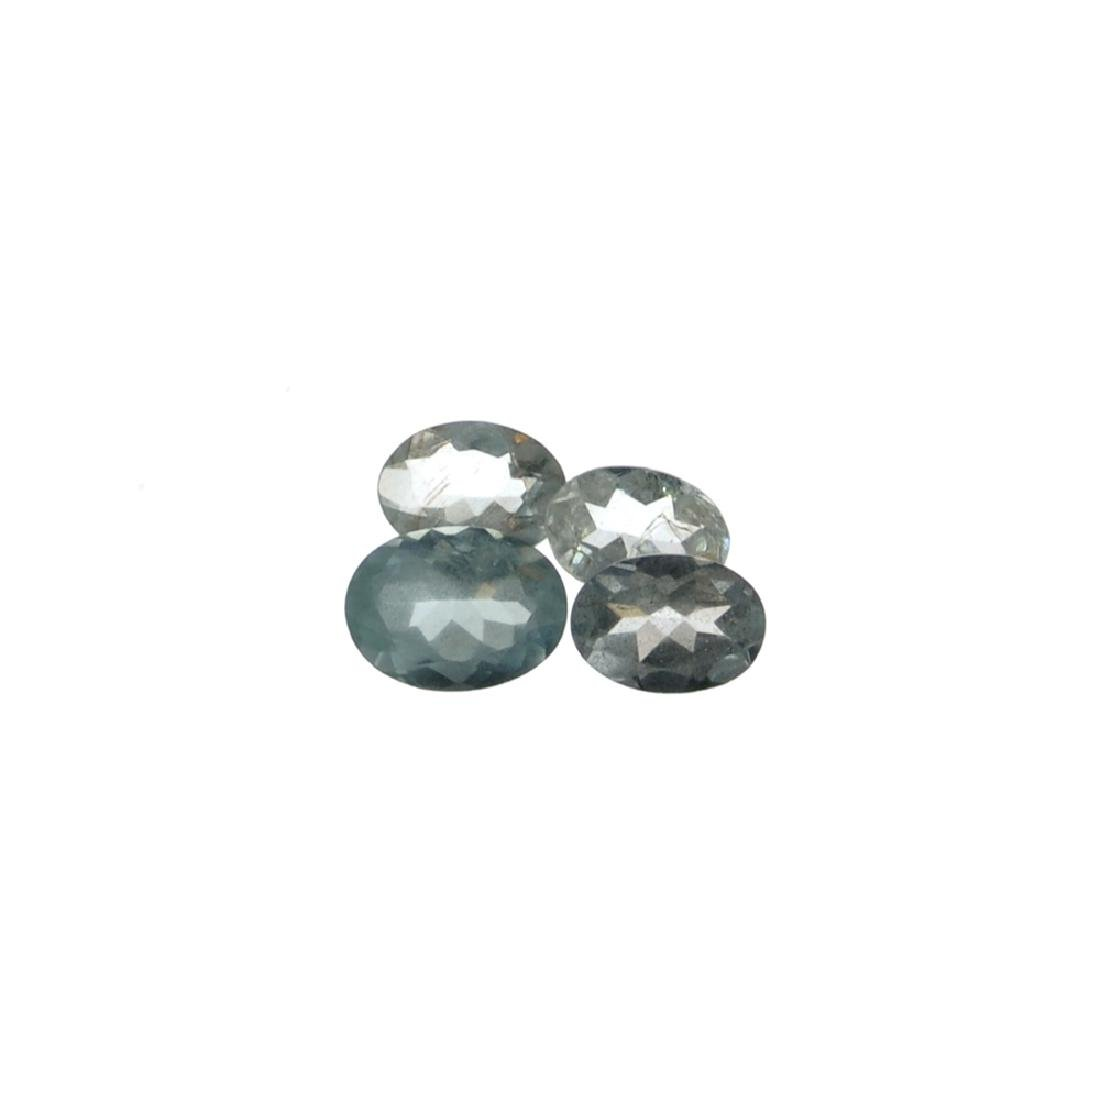 APP: 1.2k 2.96CT Oval Mixed Cut Natural Aquamarine